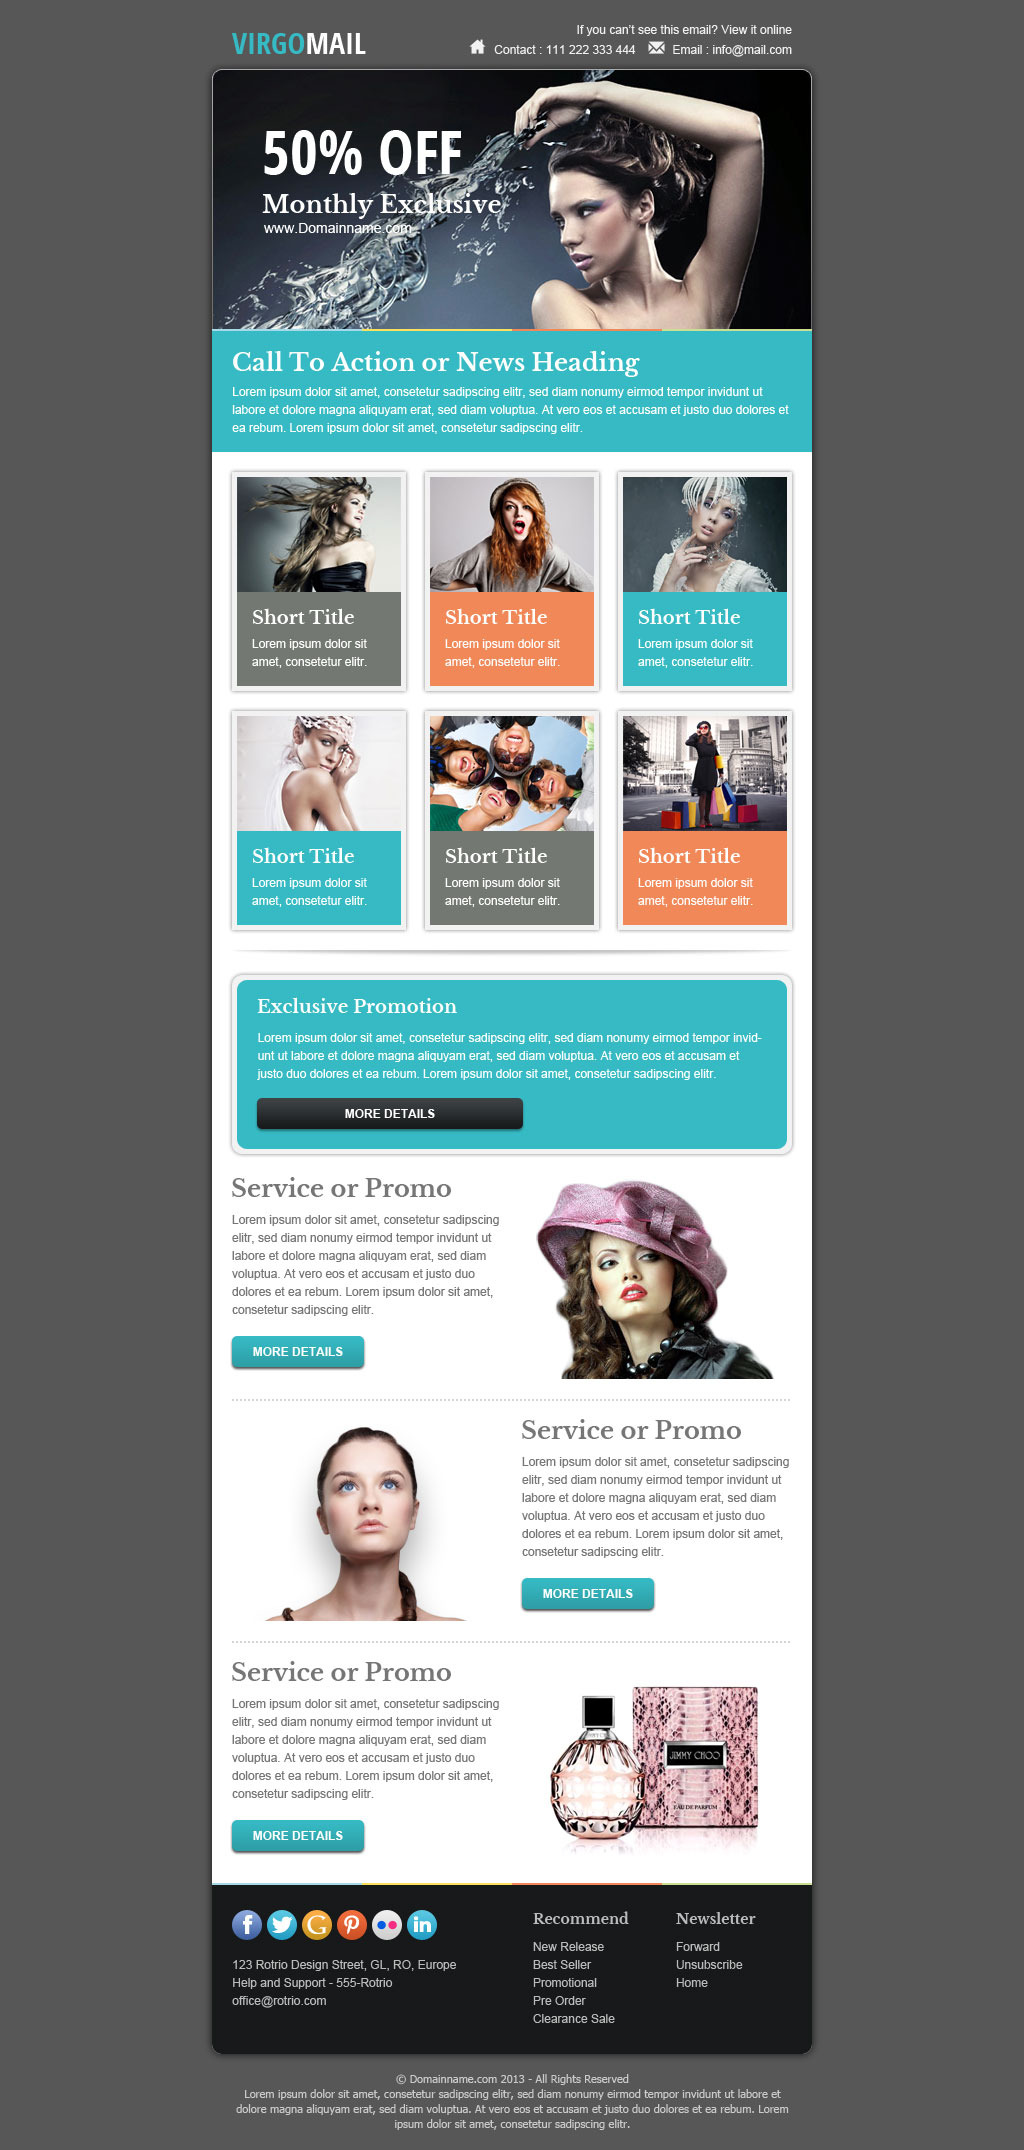 Virgomail Email Marketing Newsletter Template By Pophonic - Promotional email template